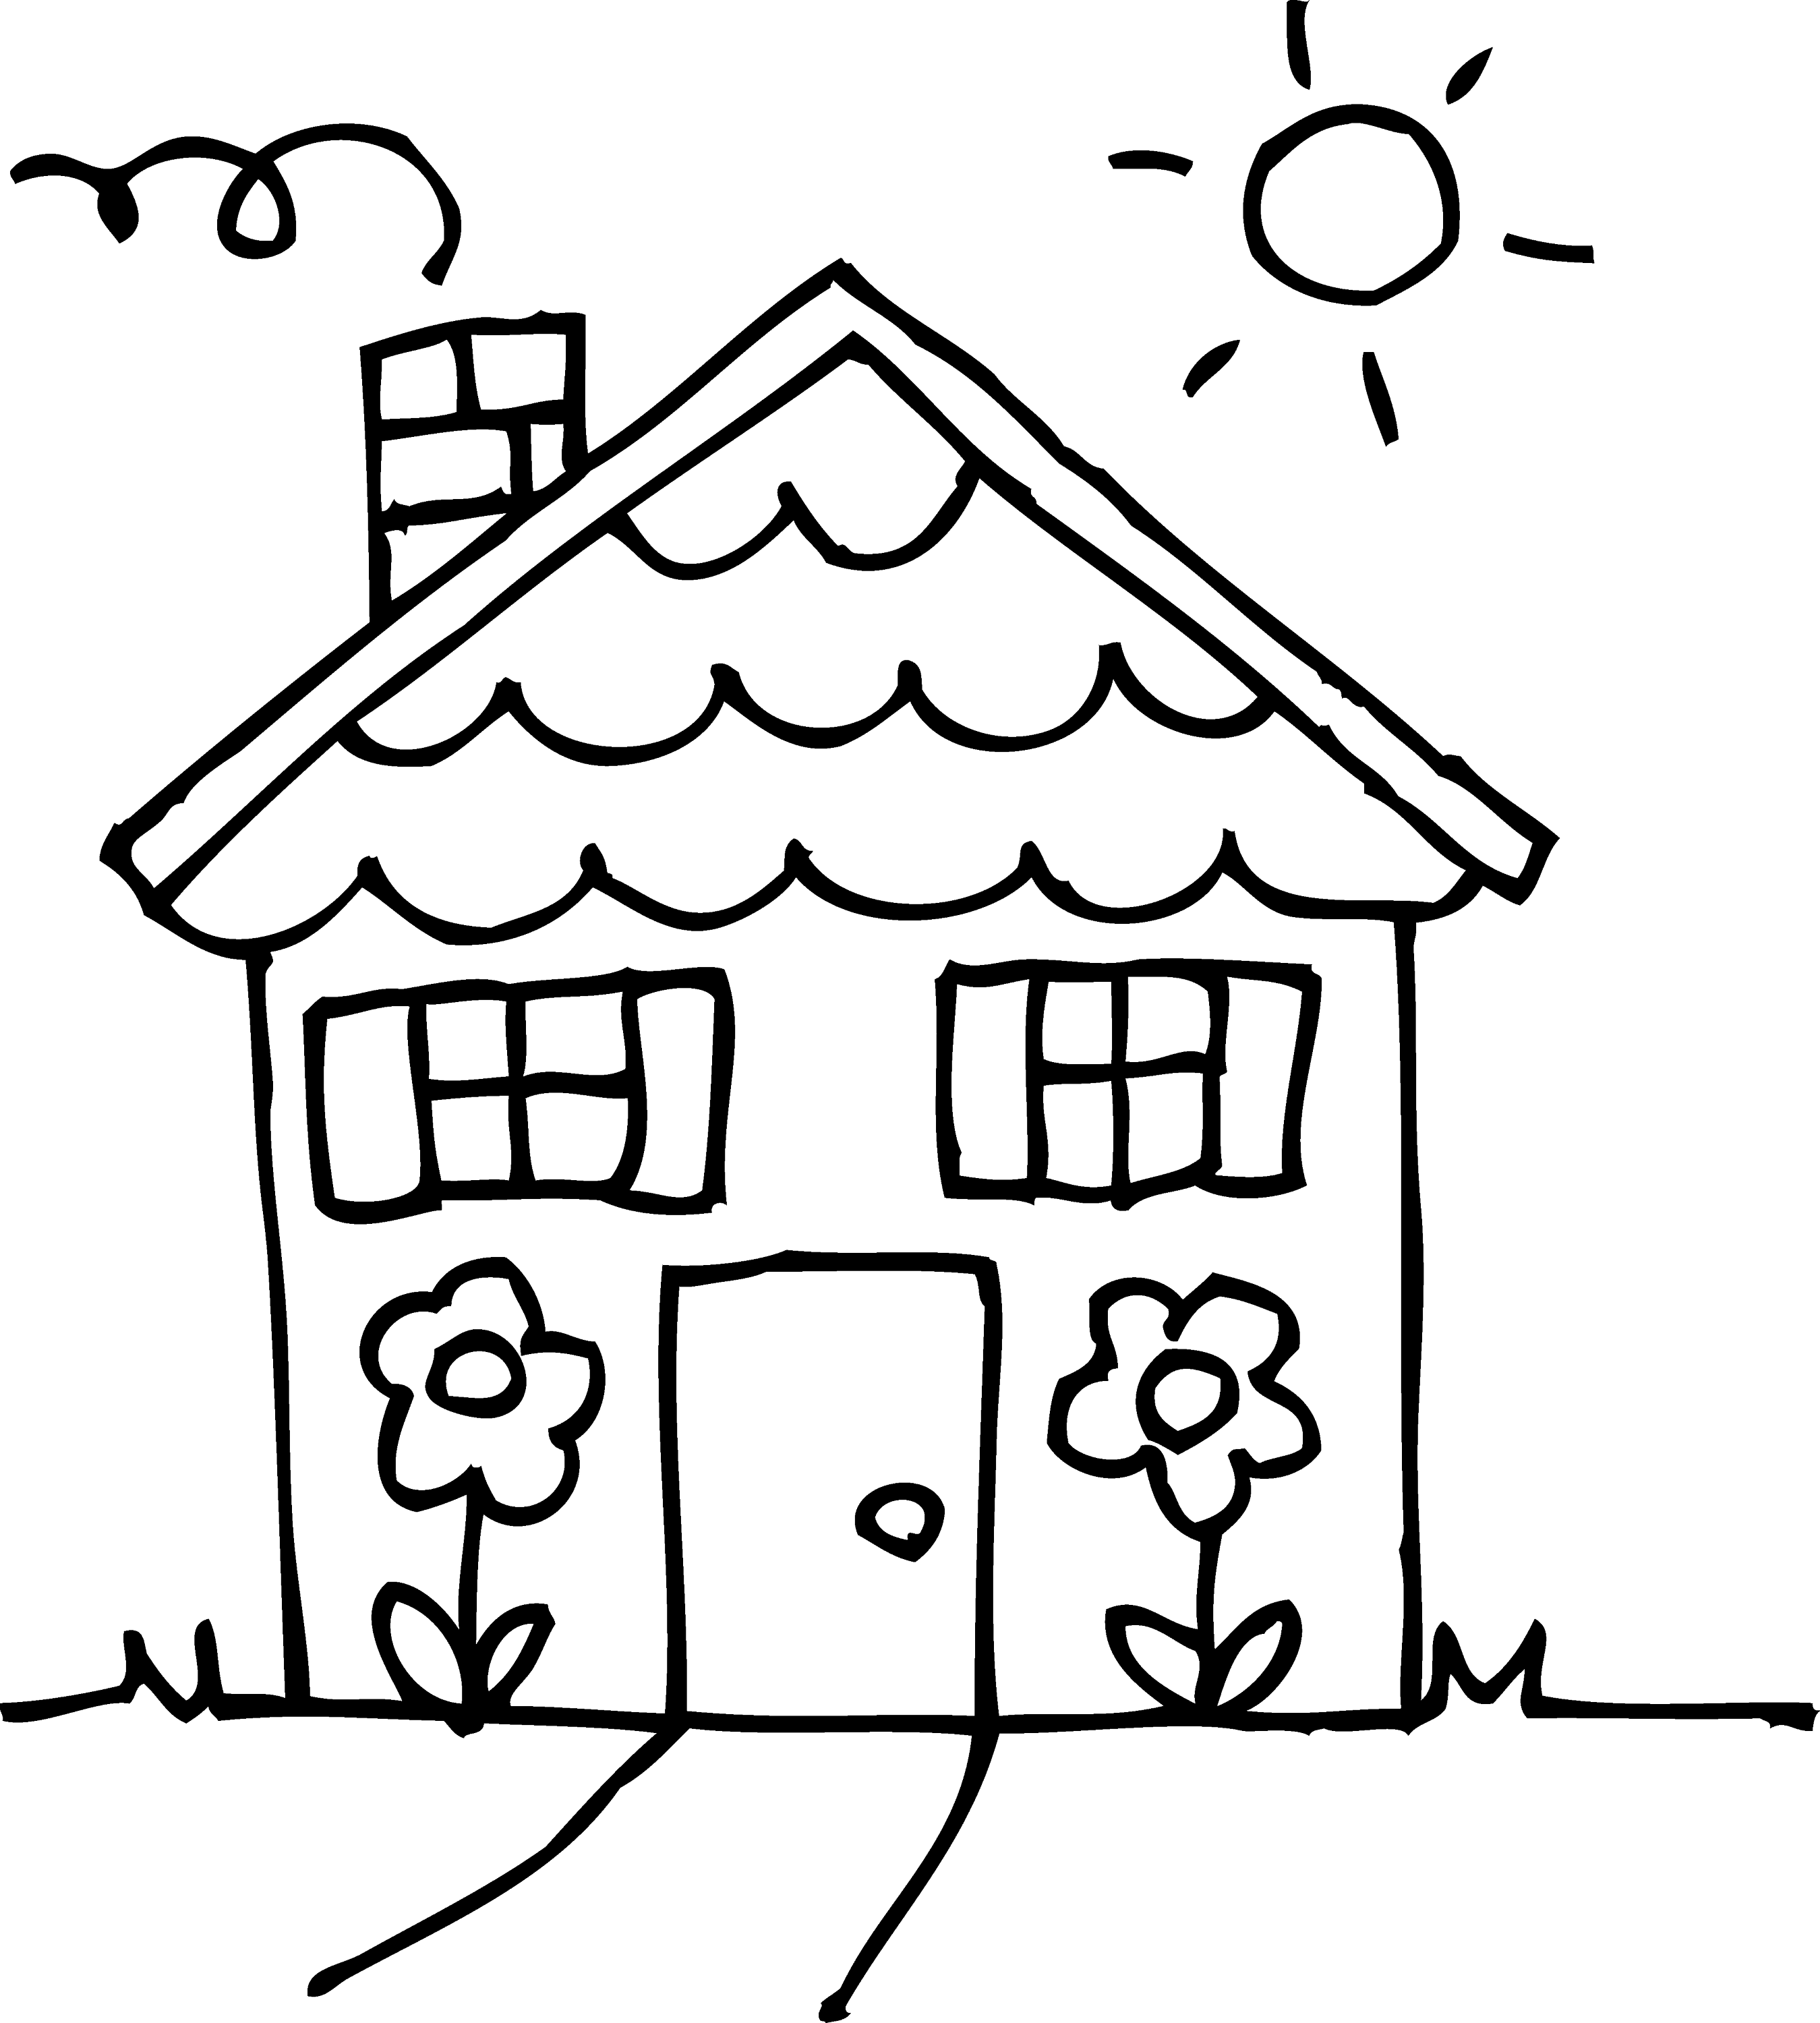 sunny day house coloring page free clip art